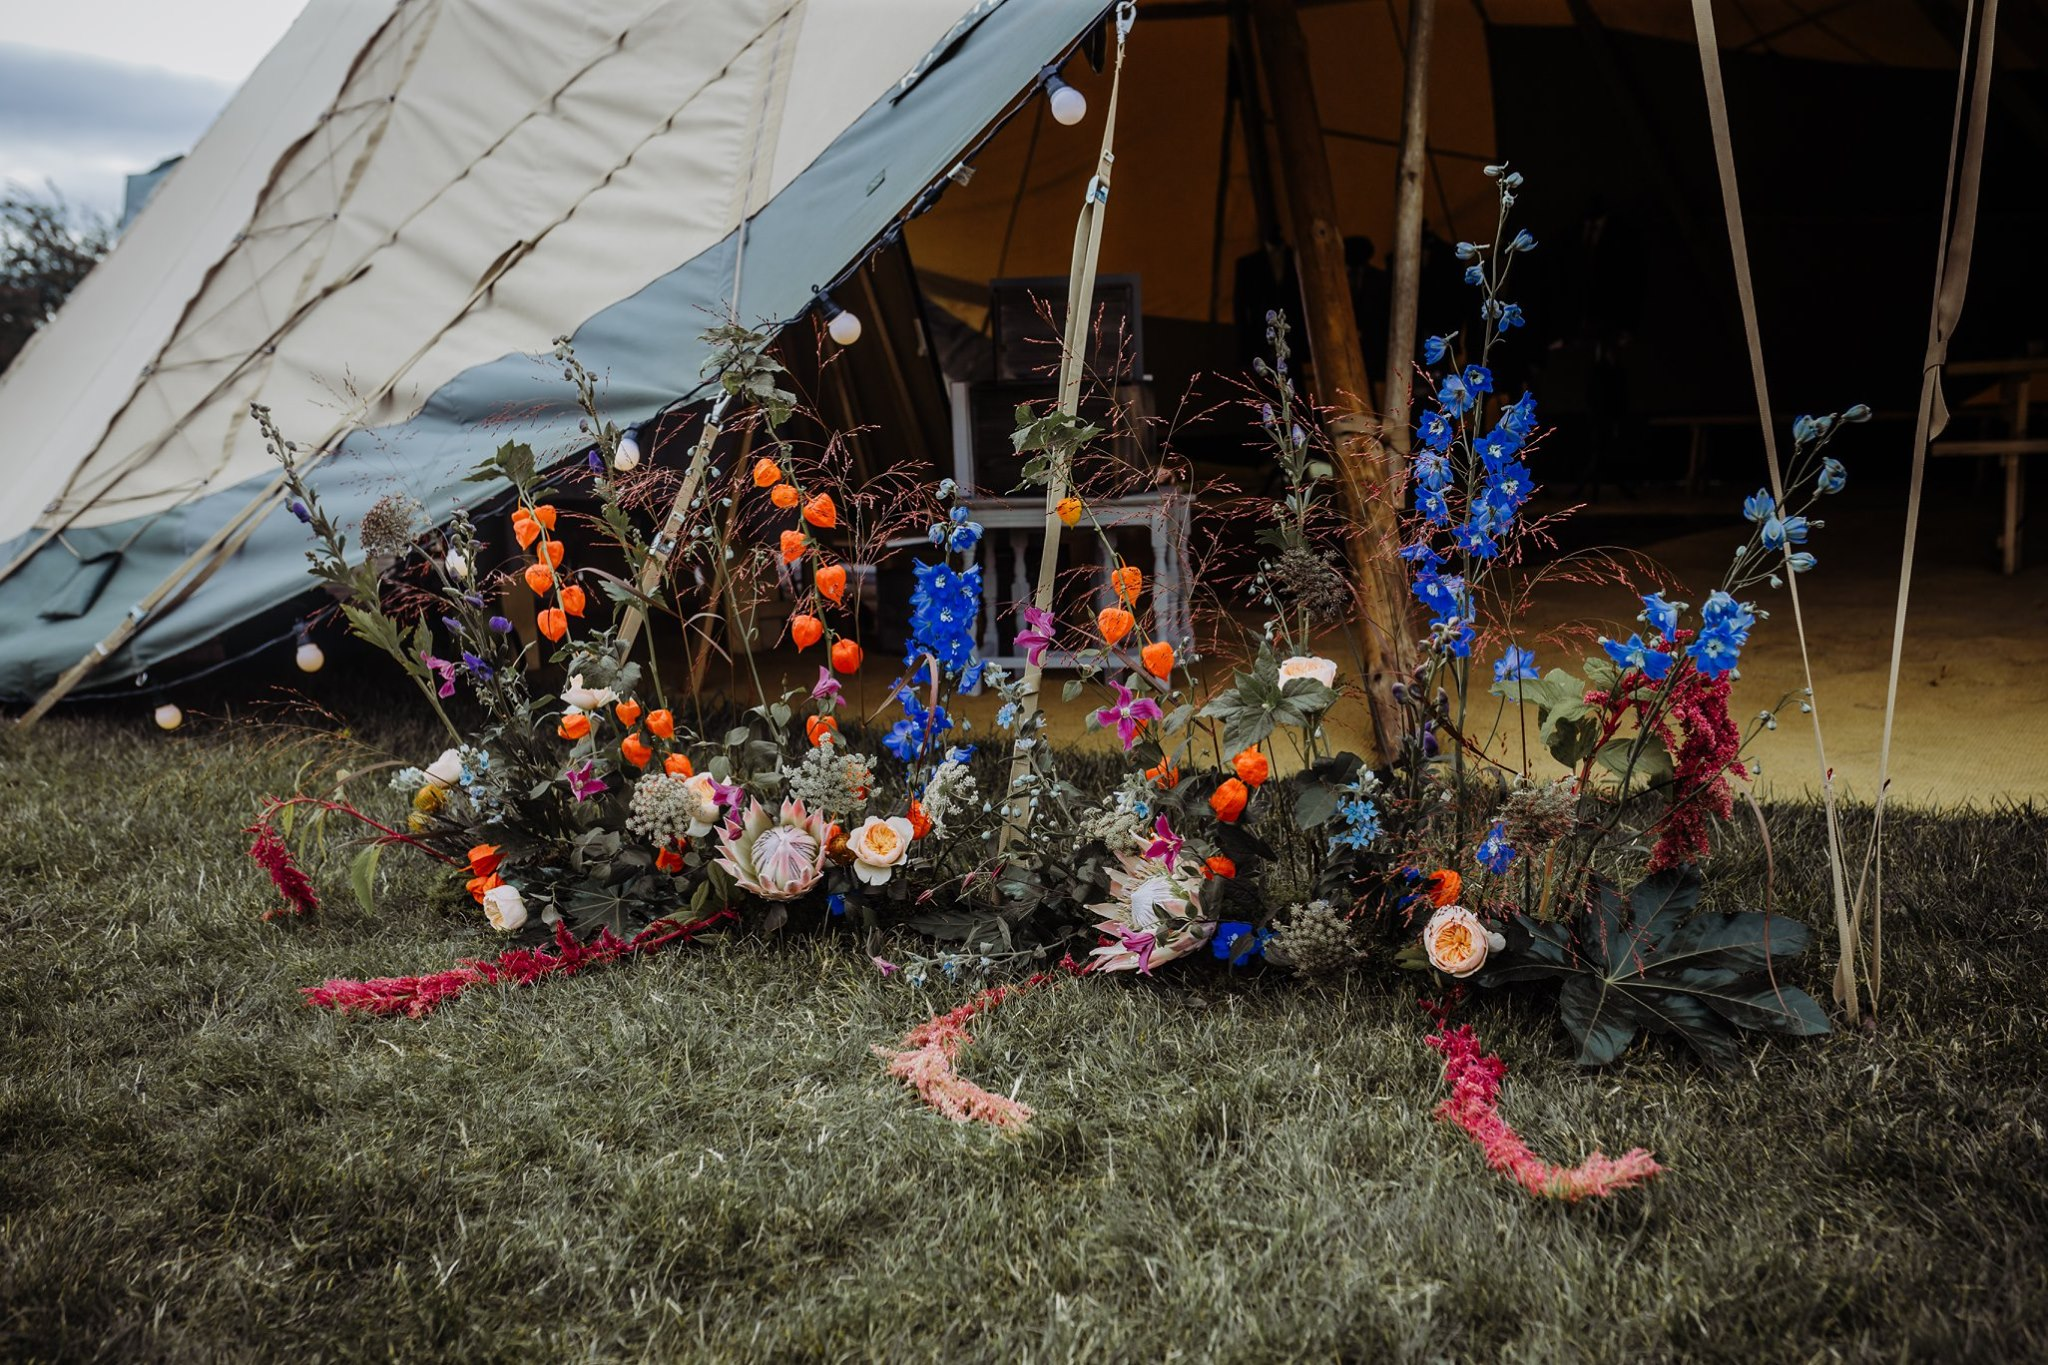 Free standing wild flower display at the entrance to three Giant Tipis ideal for magical outdoor weddings